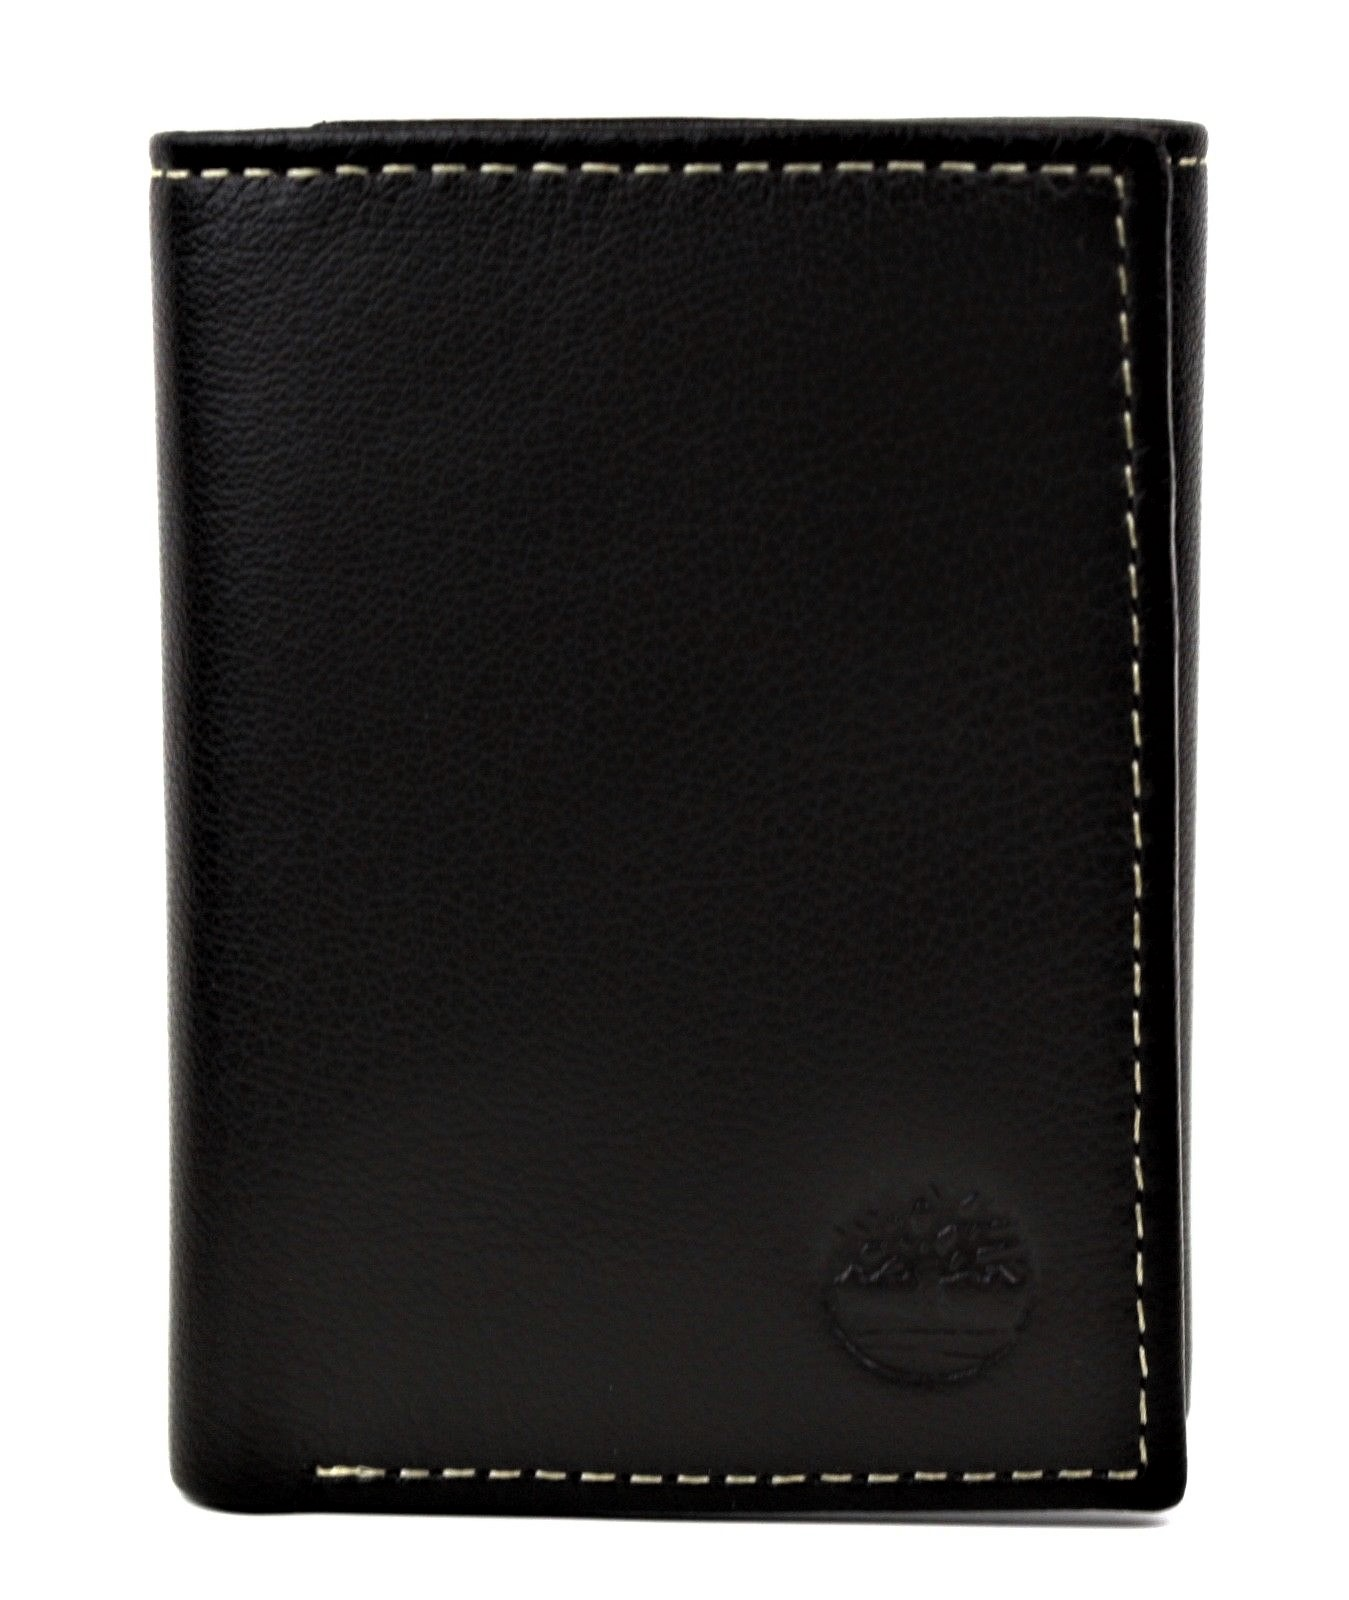 Timberland-Men-039-s-Cloudy-Trifold-Leather-Wallet thumbnail 6